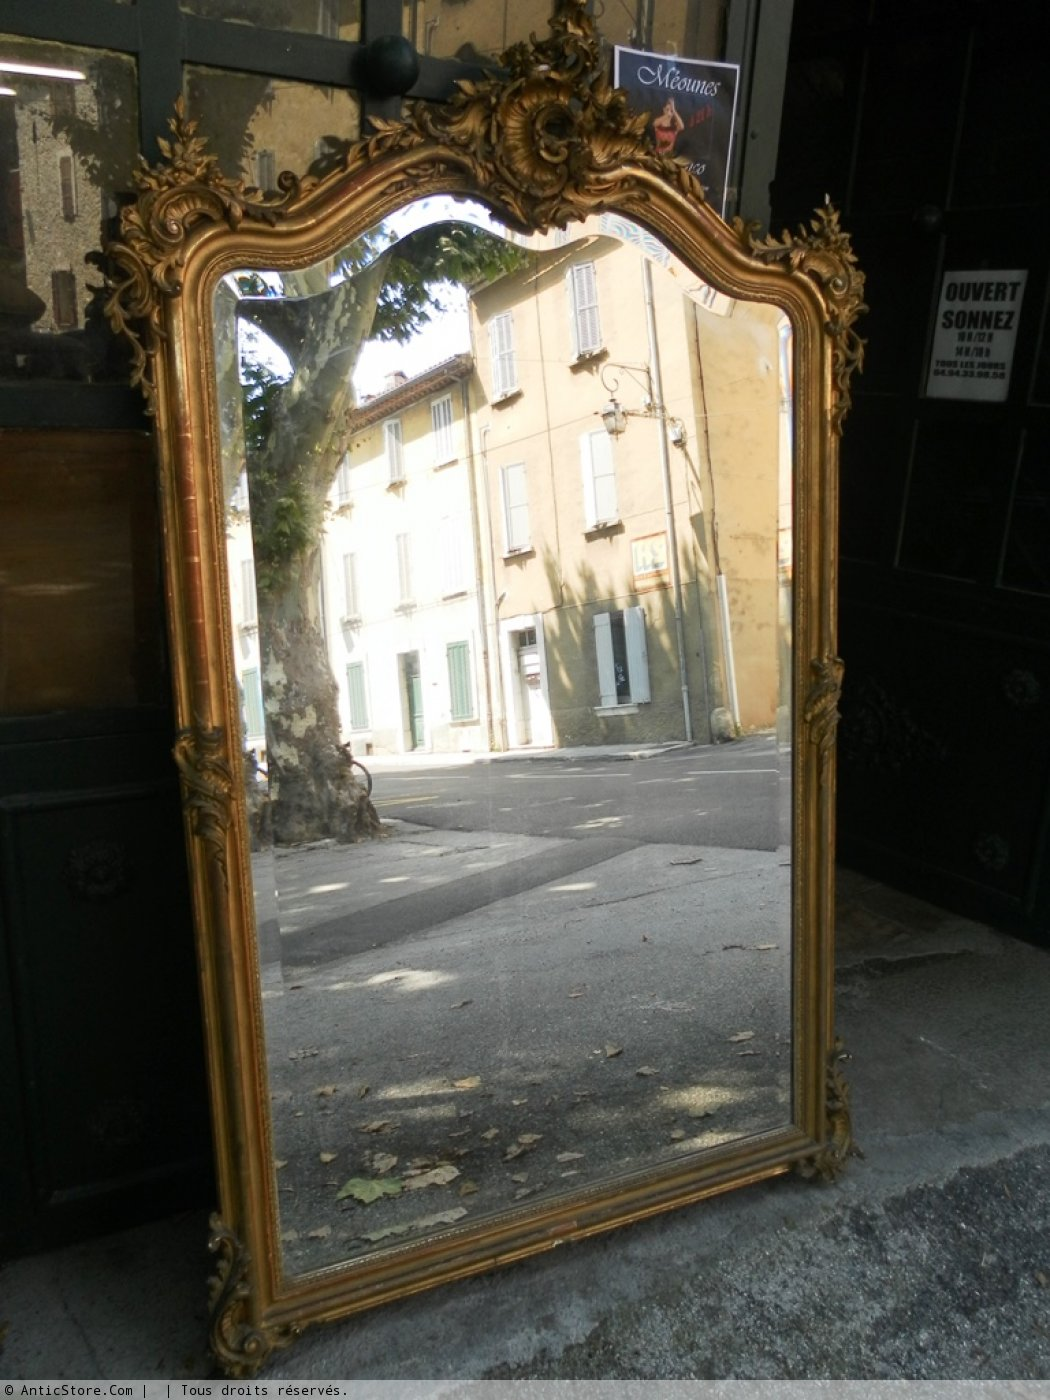 Grand miroir rocaille dor napol on iii anticstore for Grand miroir large